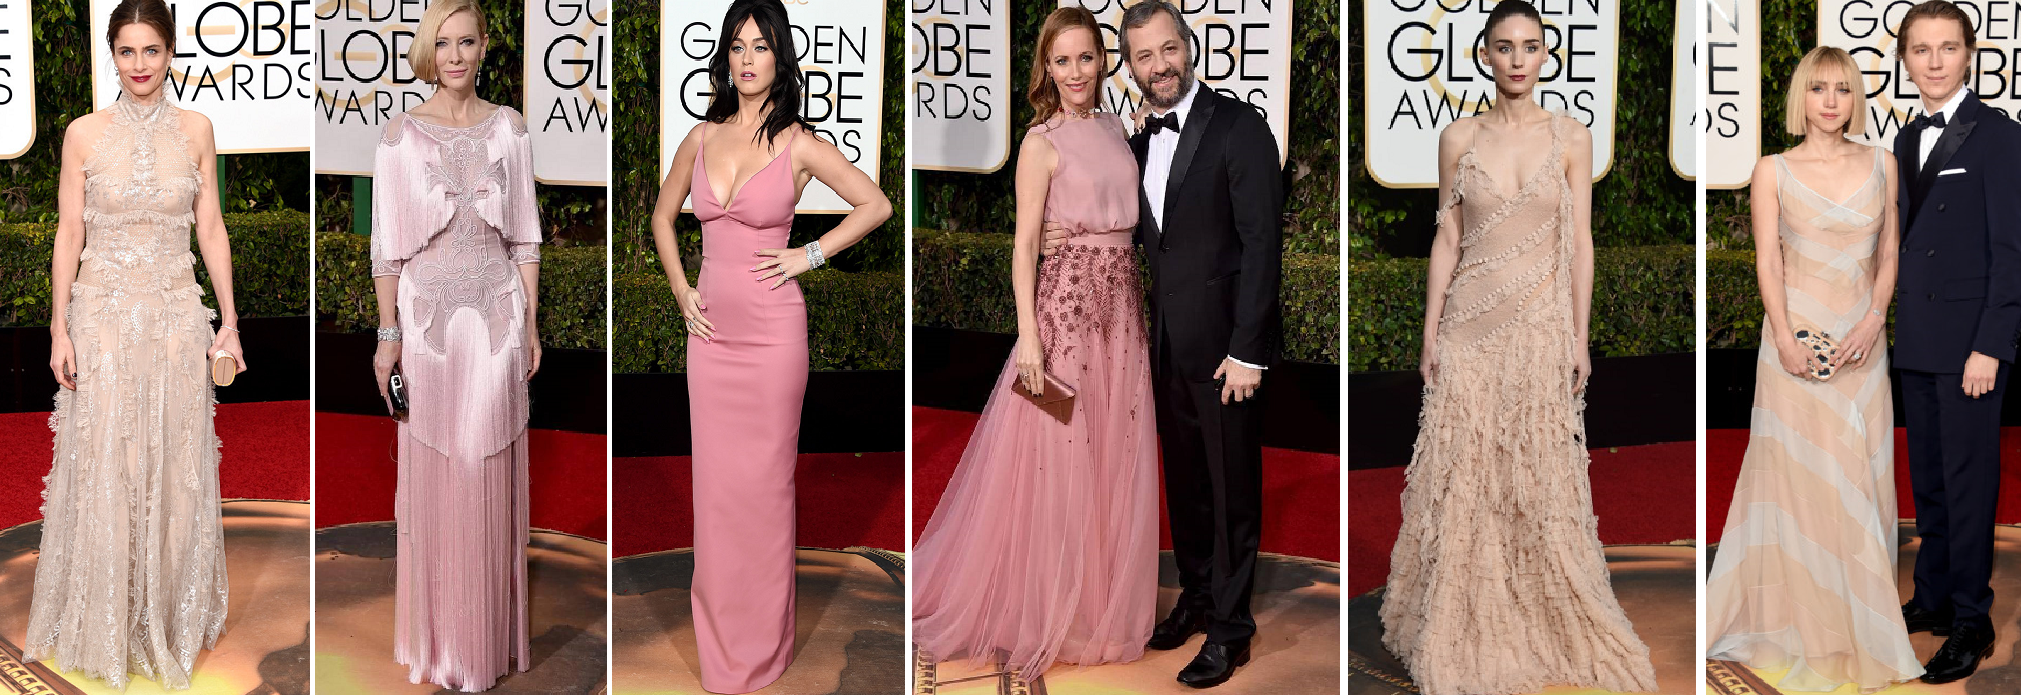 Pastels Abound - Amanda Peet in alexander McQueen, Cate Blanchett in Givenchy, Katy Perry in Prada, Leslie Mann in Monique L'Huilier with Judd Apatow, Rooney Mara in Alexander McQueen, Zoe Kazan with Paul Dano